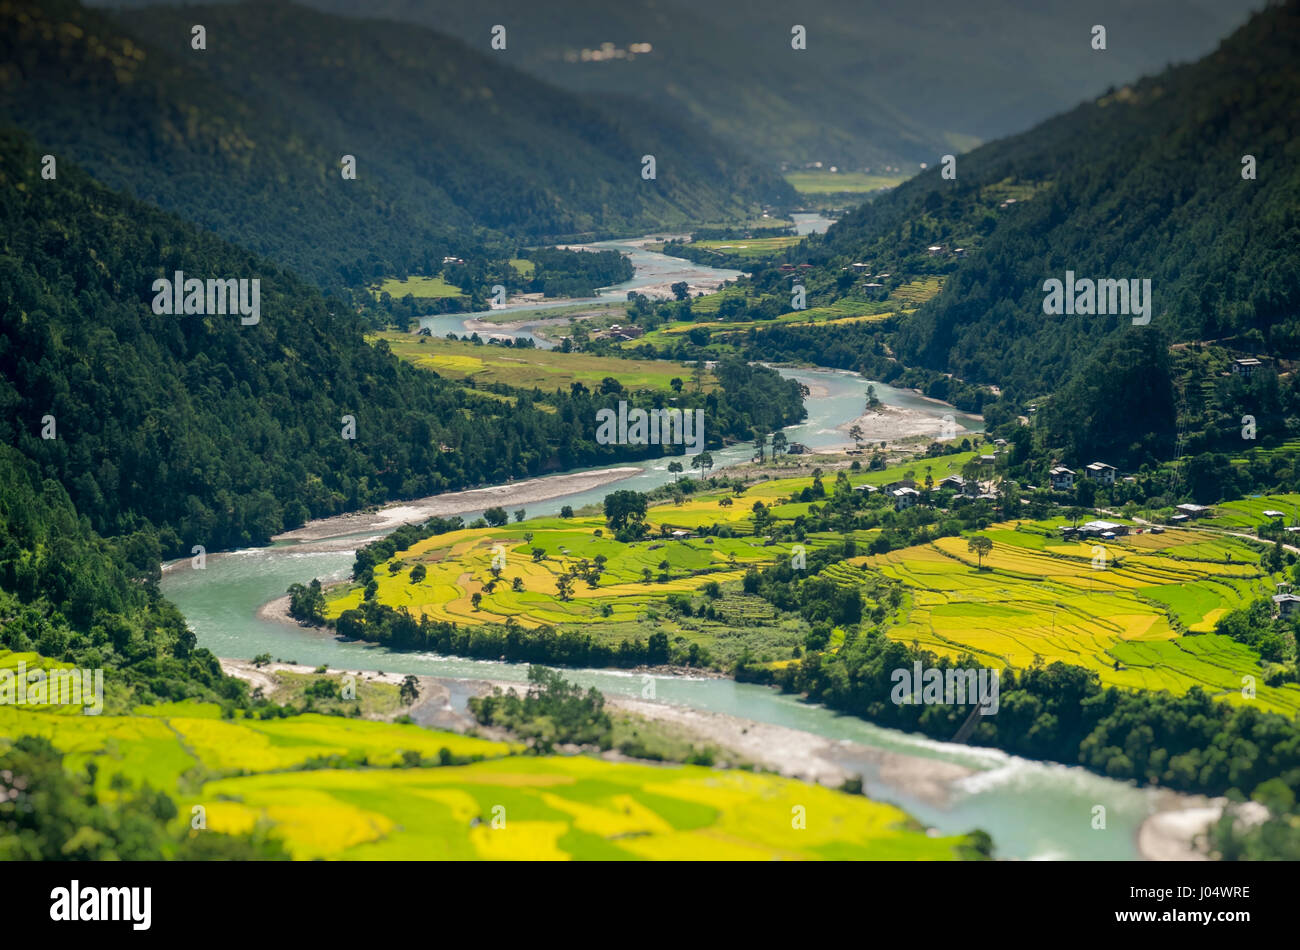 PUNAKHA, BHUTAN - CIRCA October 2014: View of mountain range and valley in Punakha, Bhutan - Stock Image